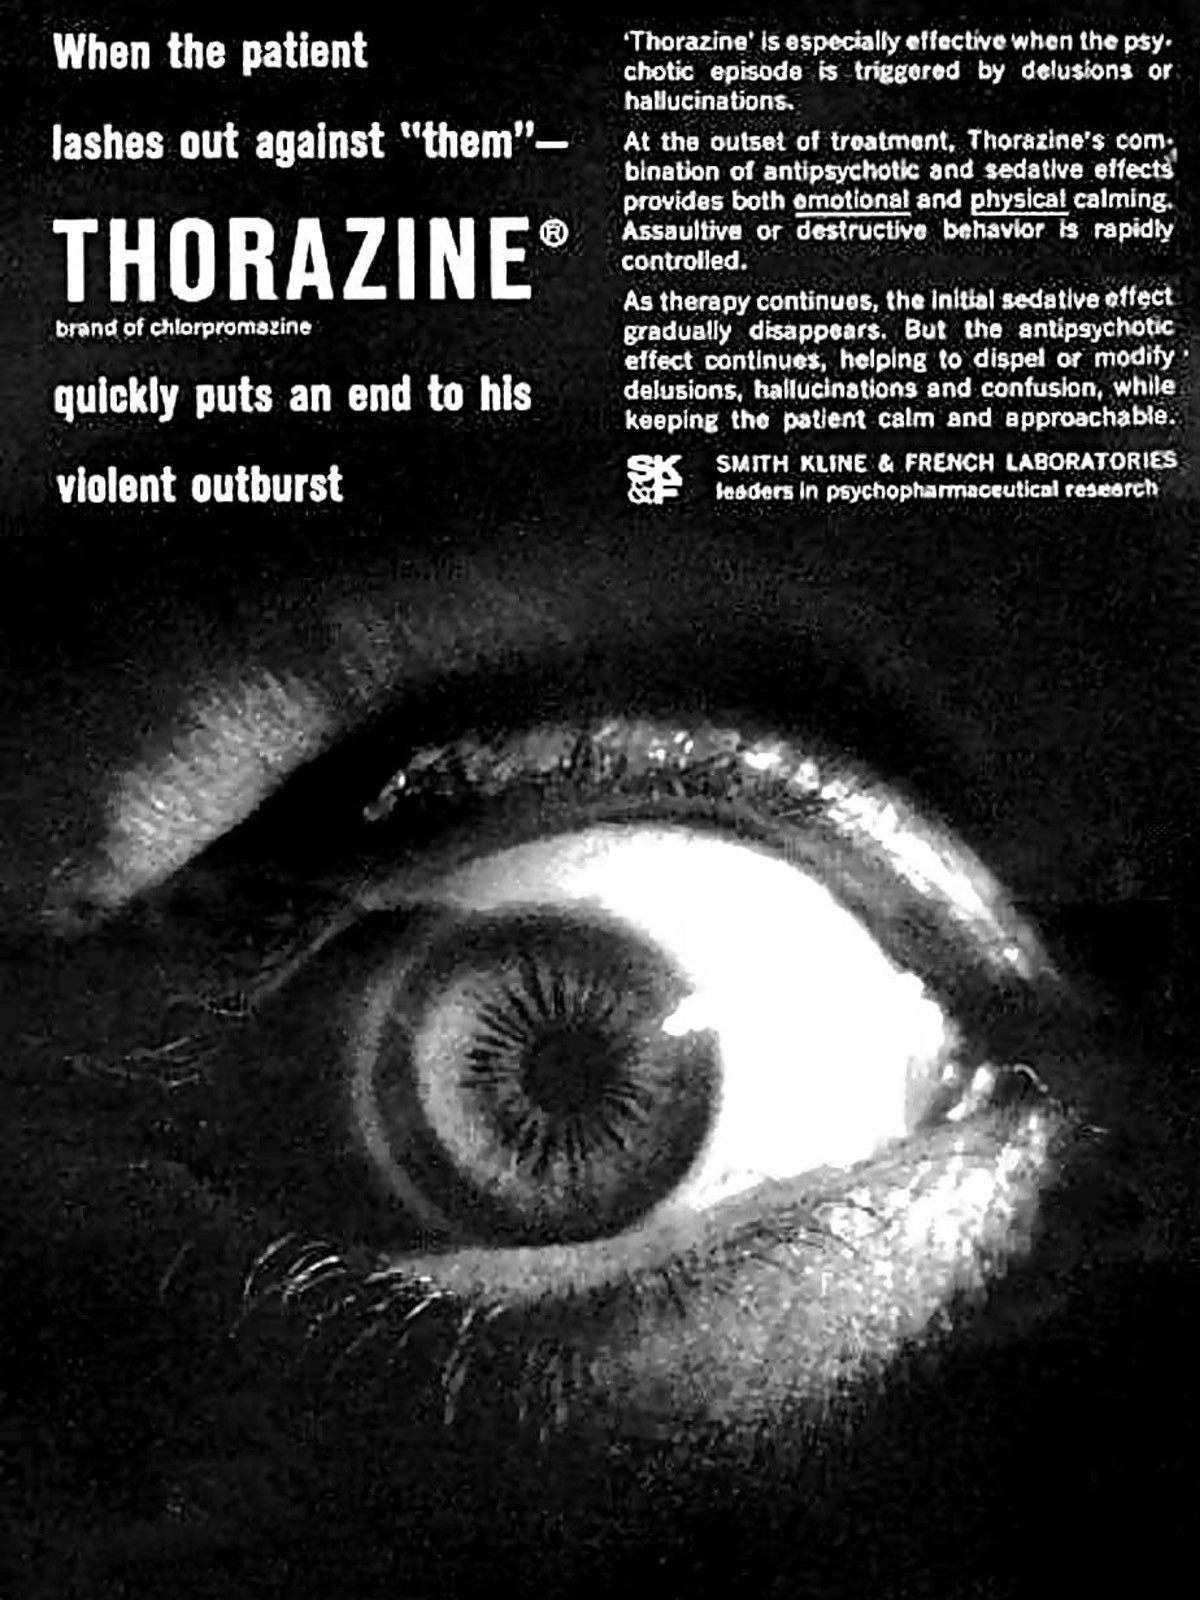 11,000 doses of antipsychotic drug Thorazine—used by the CIA's MK-ULTRA program, were found at Jonestown